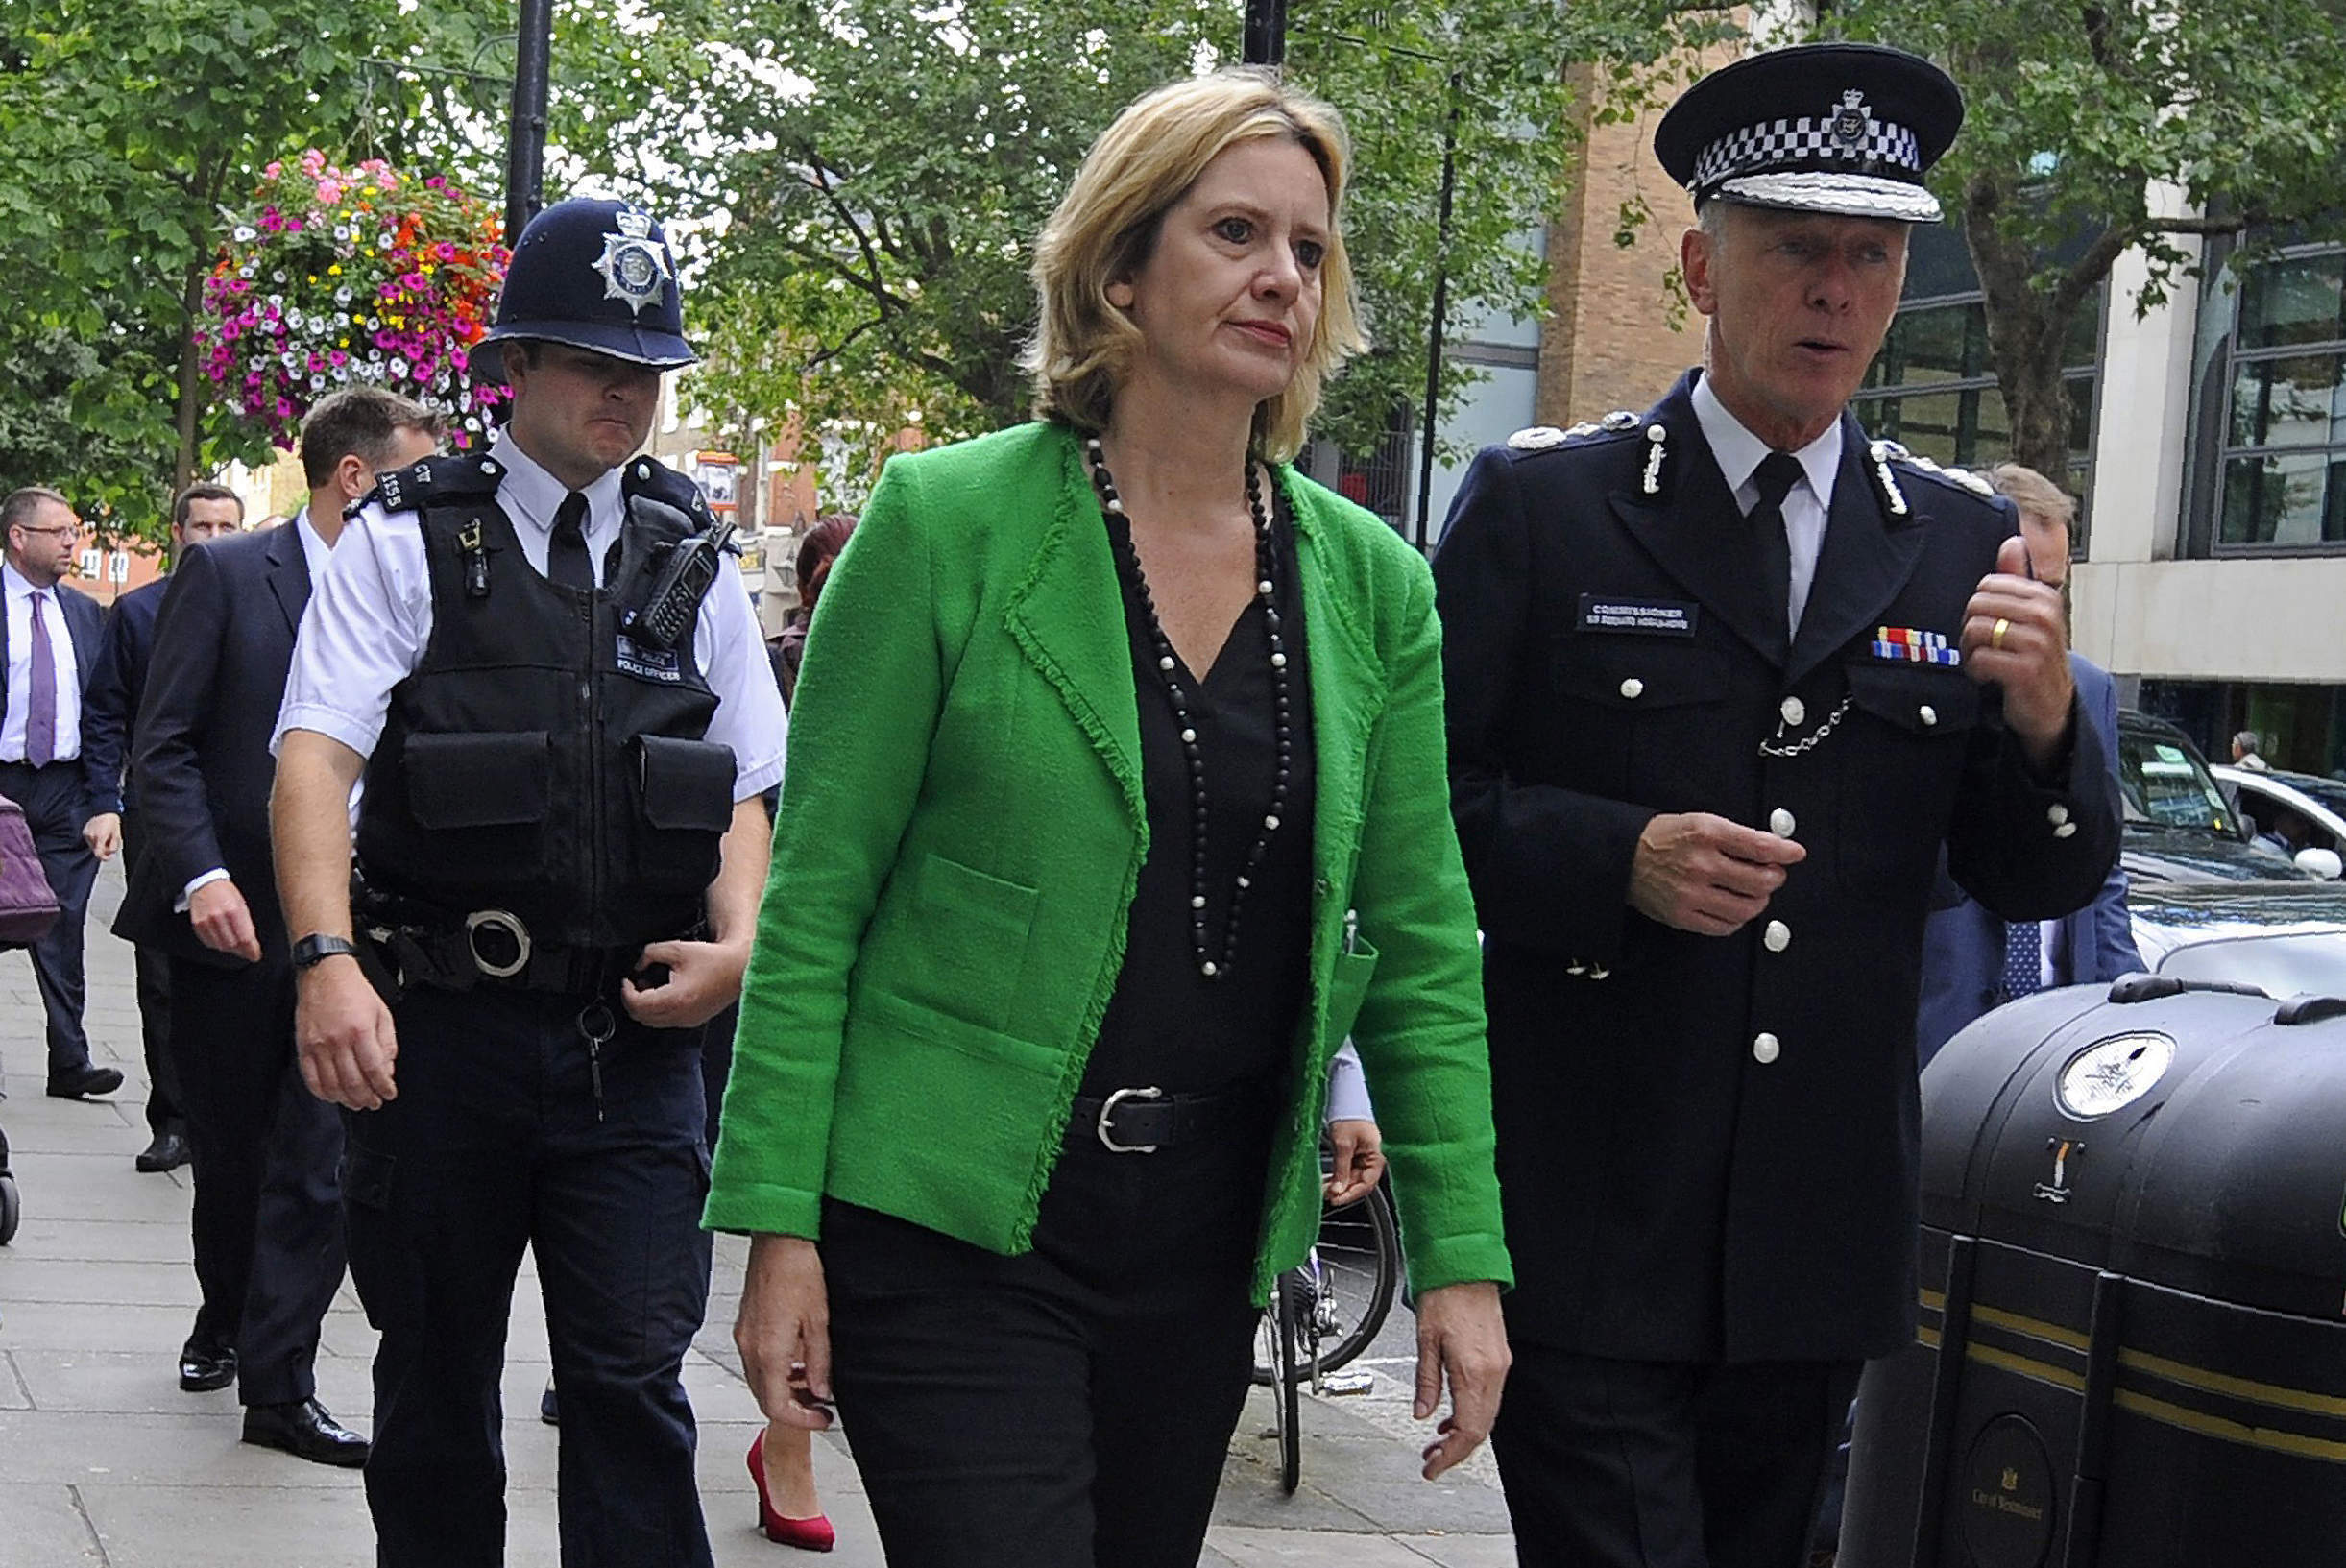 Cabinet audit: what does the appointment of Amber Rudd as Home Secretary mean for policy?